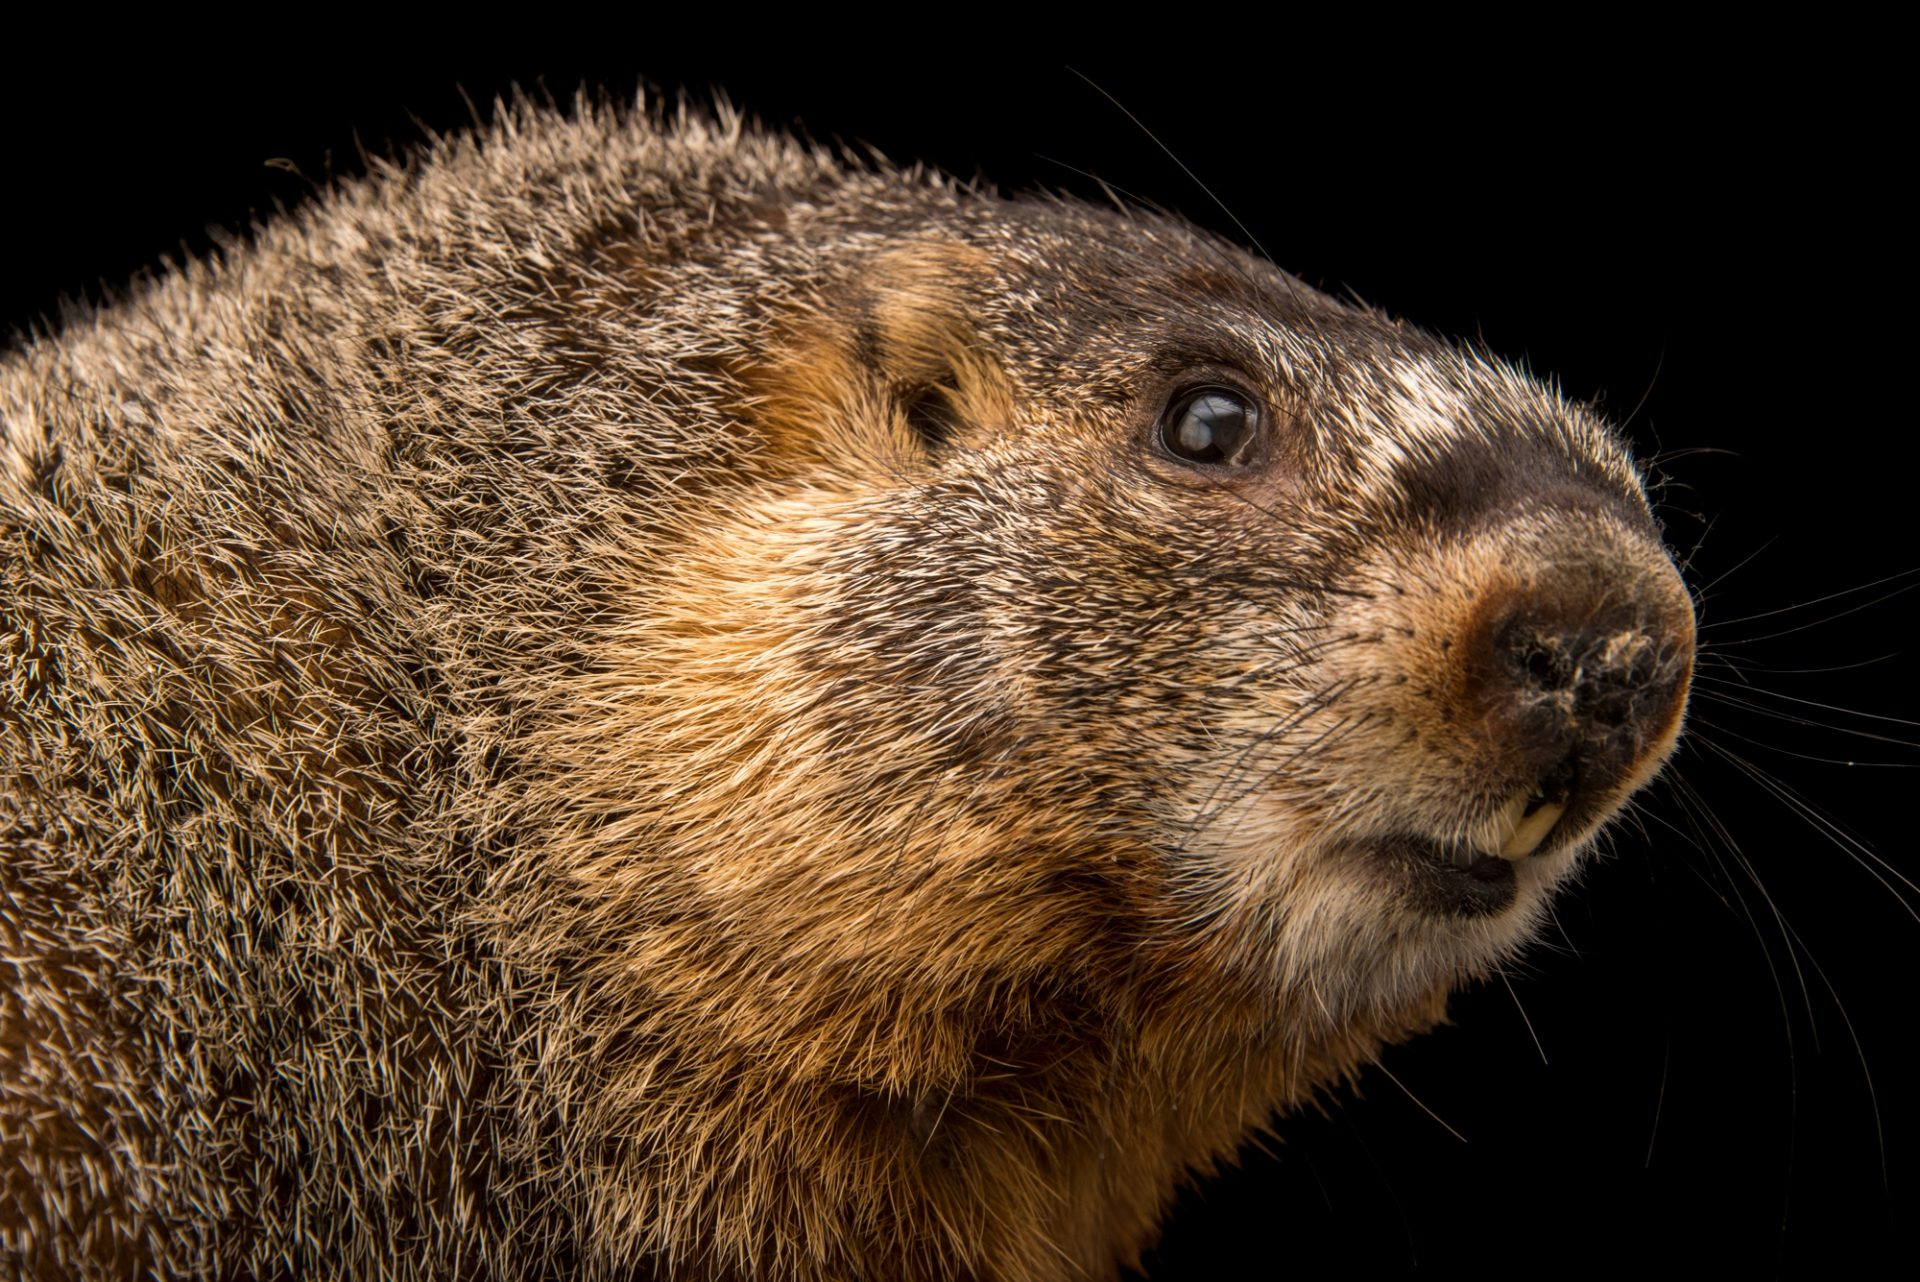 Photo: A female yellow-bellied marmot (Marmota flaviventris) at the hibernation study lab of Dr. Greg Florant at Colorado State University.